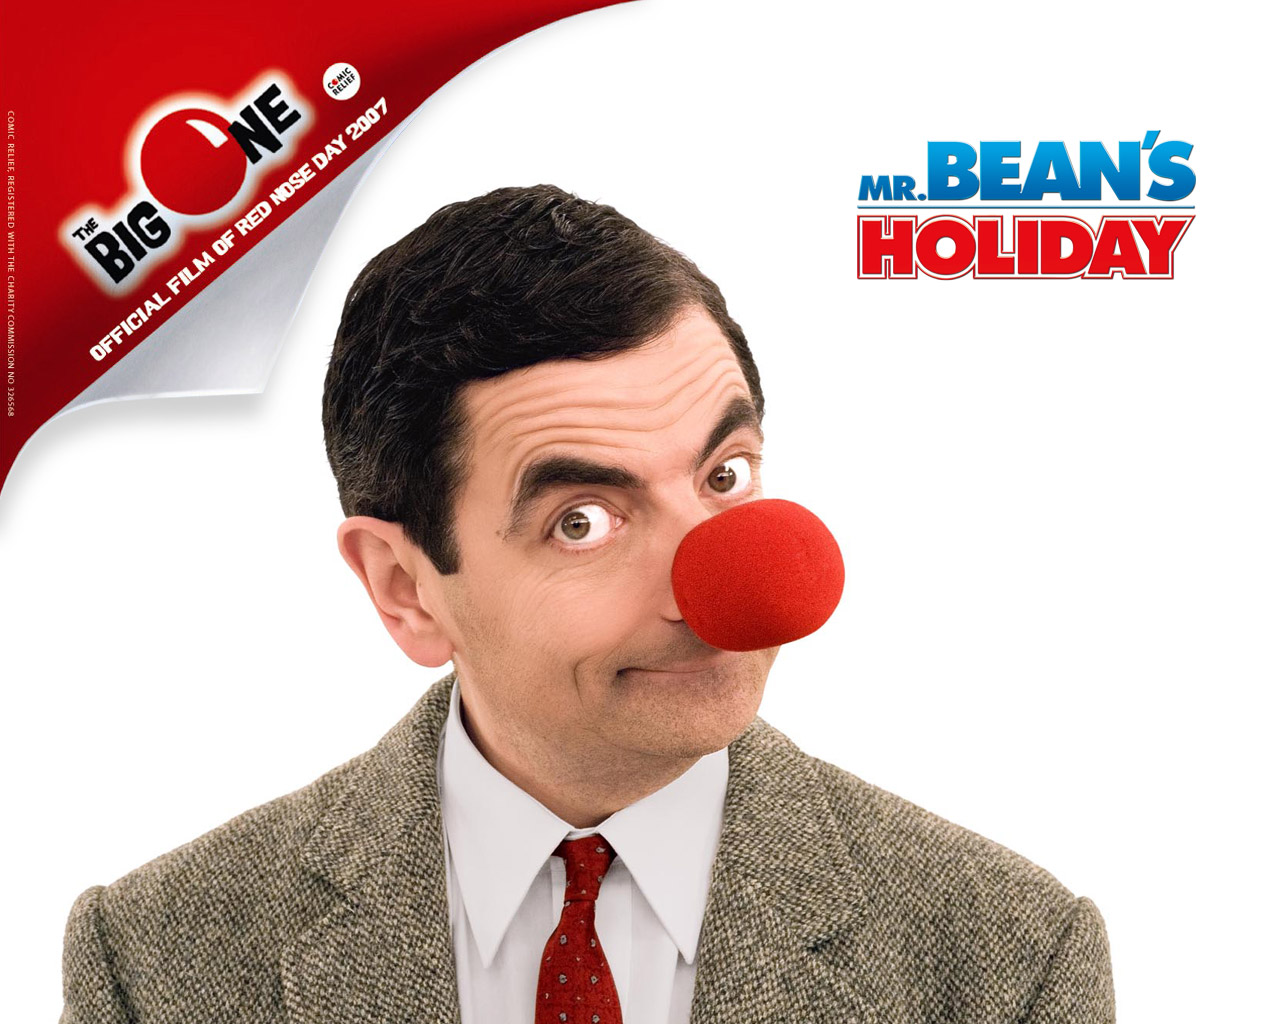 Mr. Bean - Red Nose Day